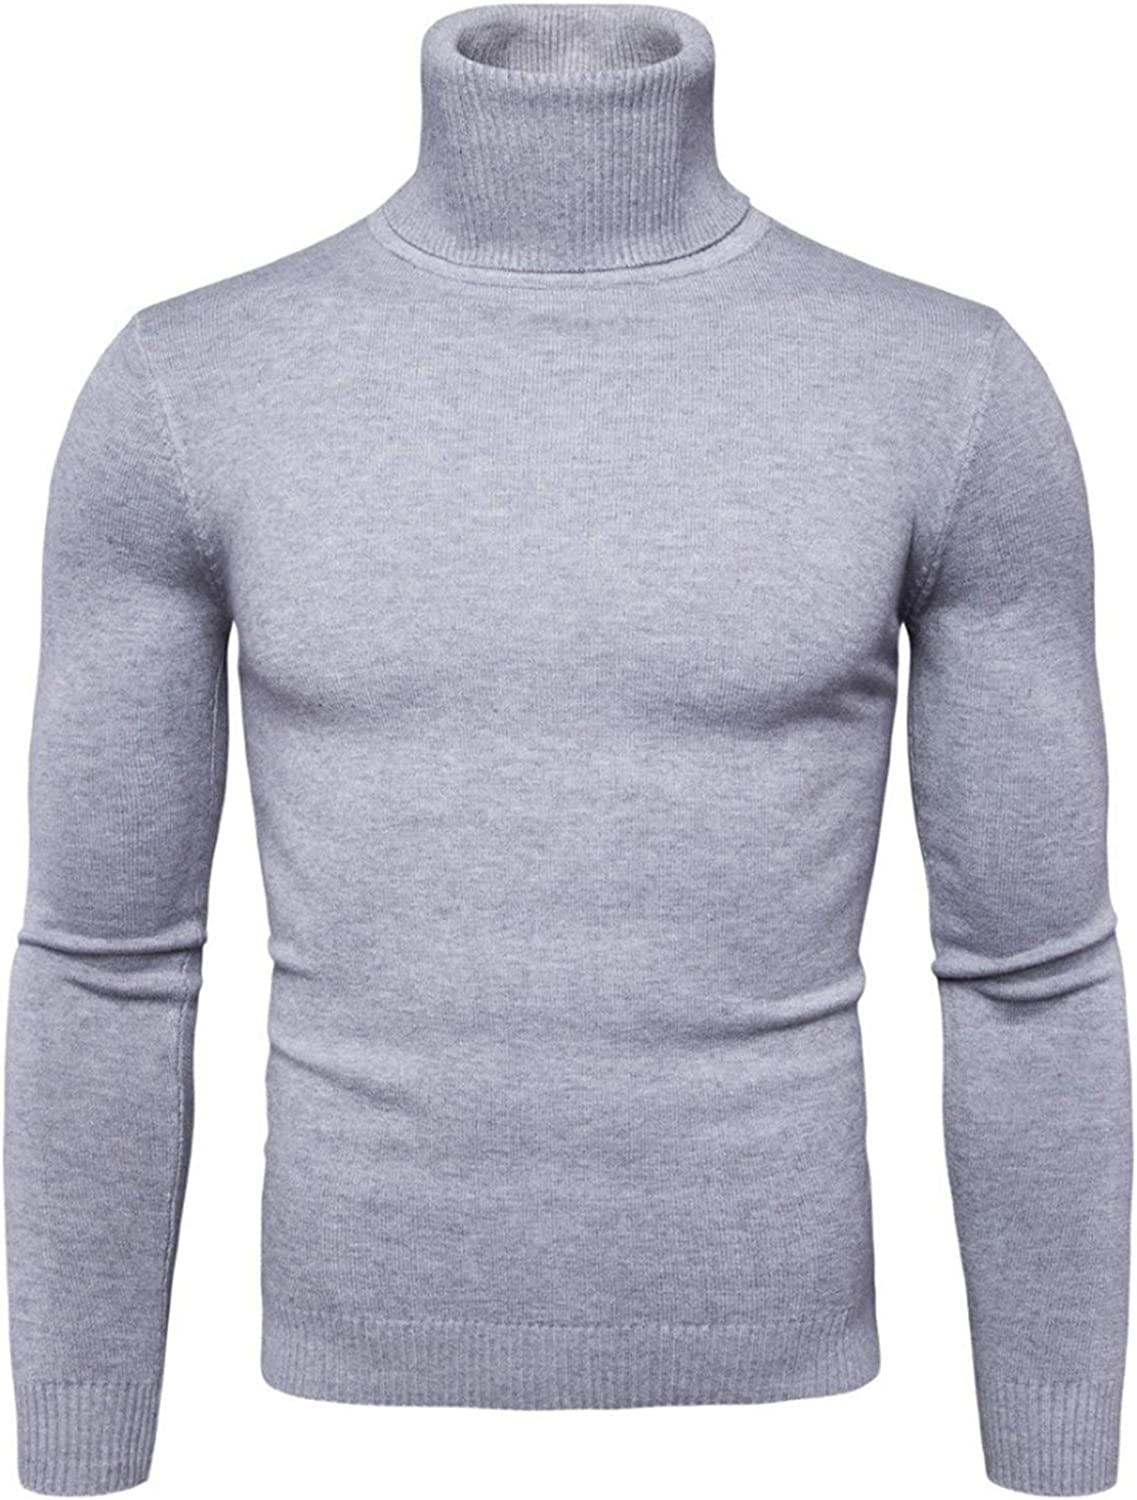 Robert Reyna Fashion Mens Turtleneck Sweaters Long Sleeve Knitted High Elastic Sweater,X-Large,LightGray